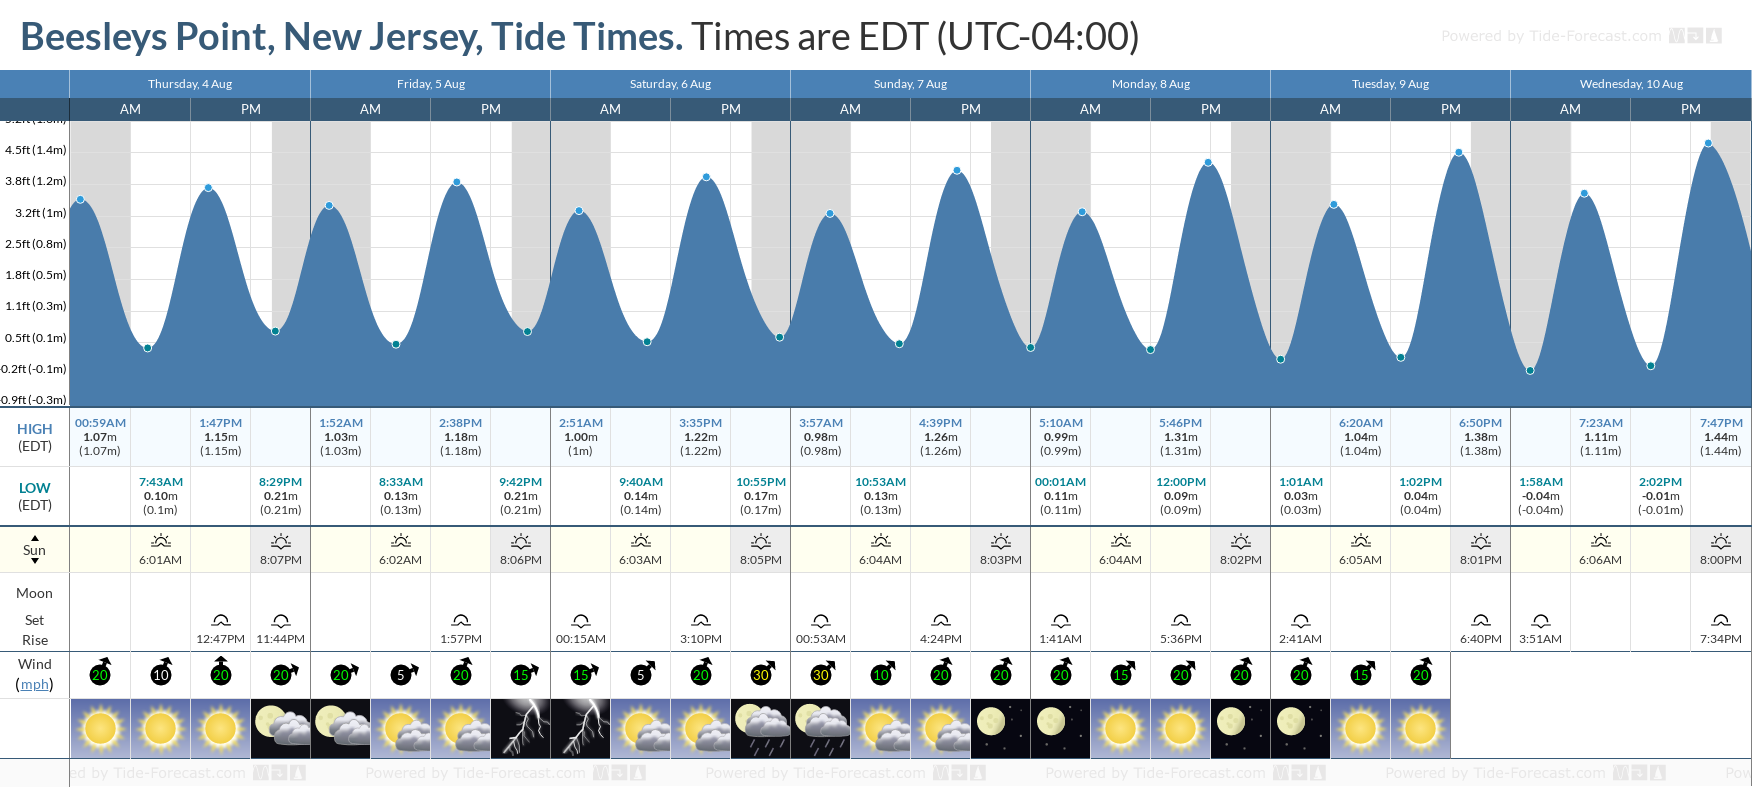 Beesleys Point, New Jersey Tide Chart including high and low tide tide times for the next 7 days